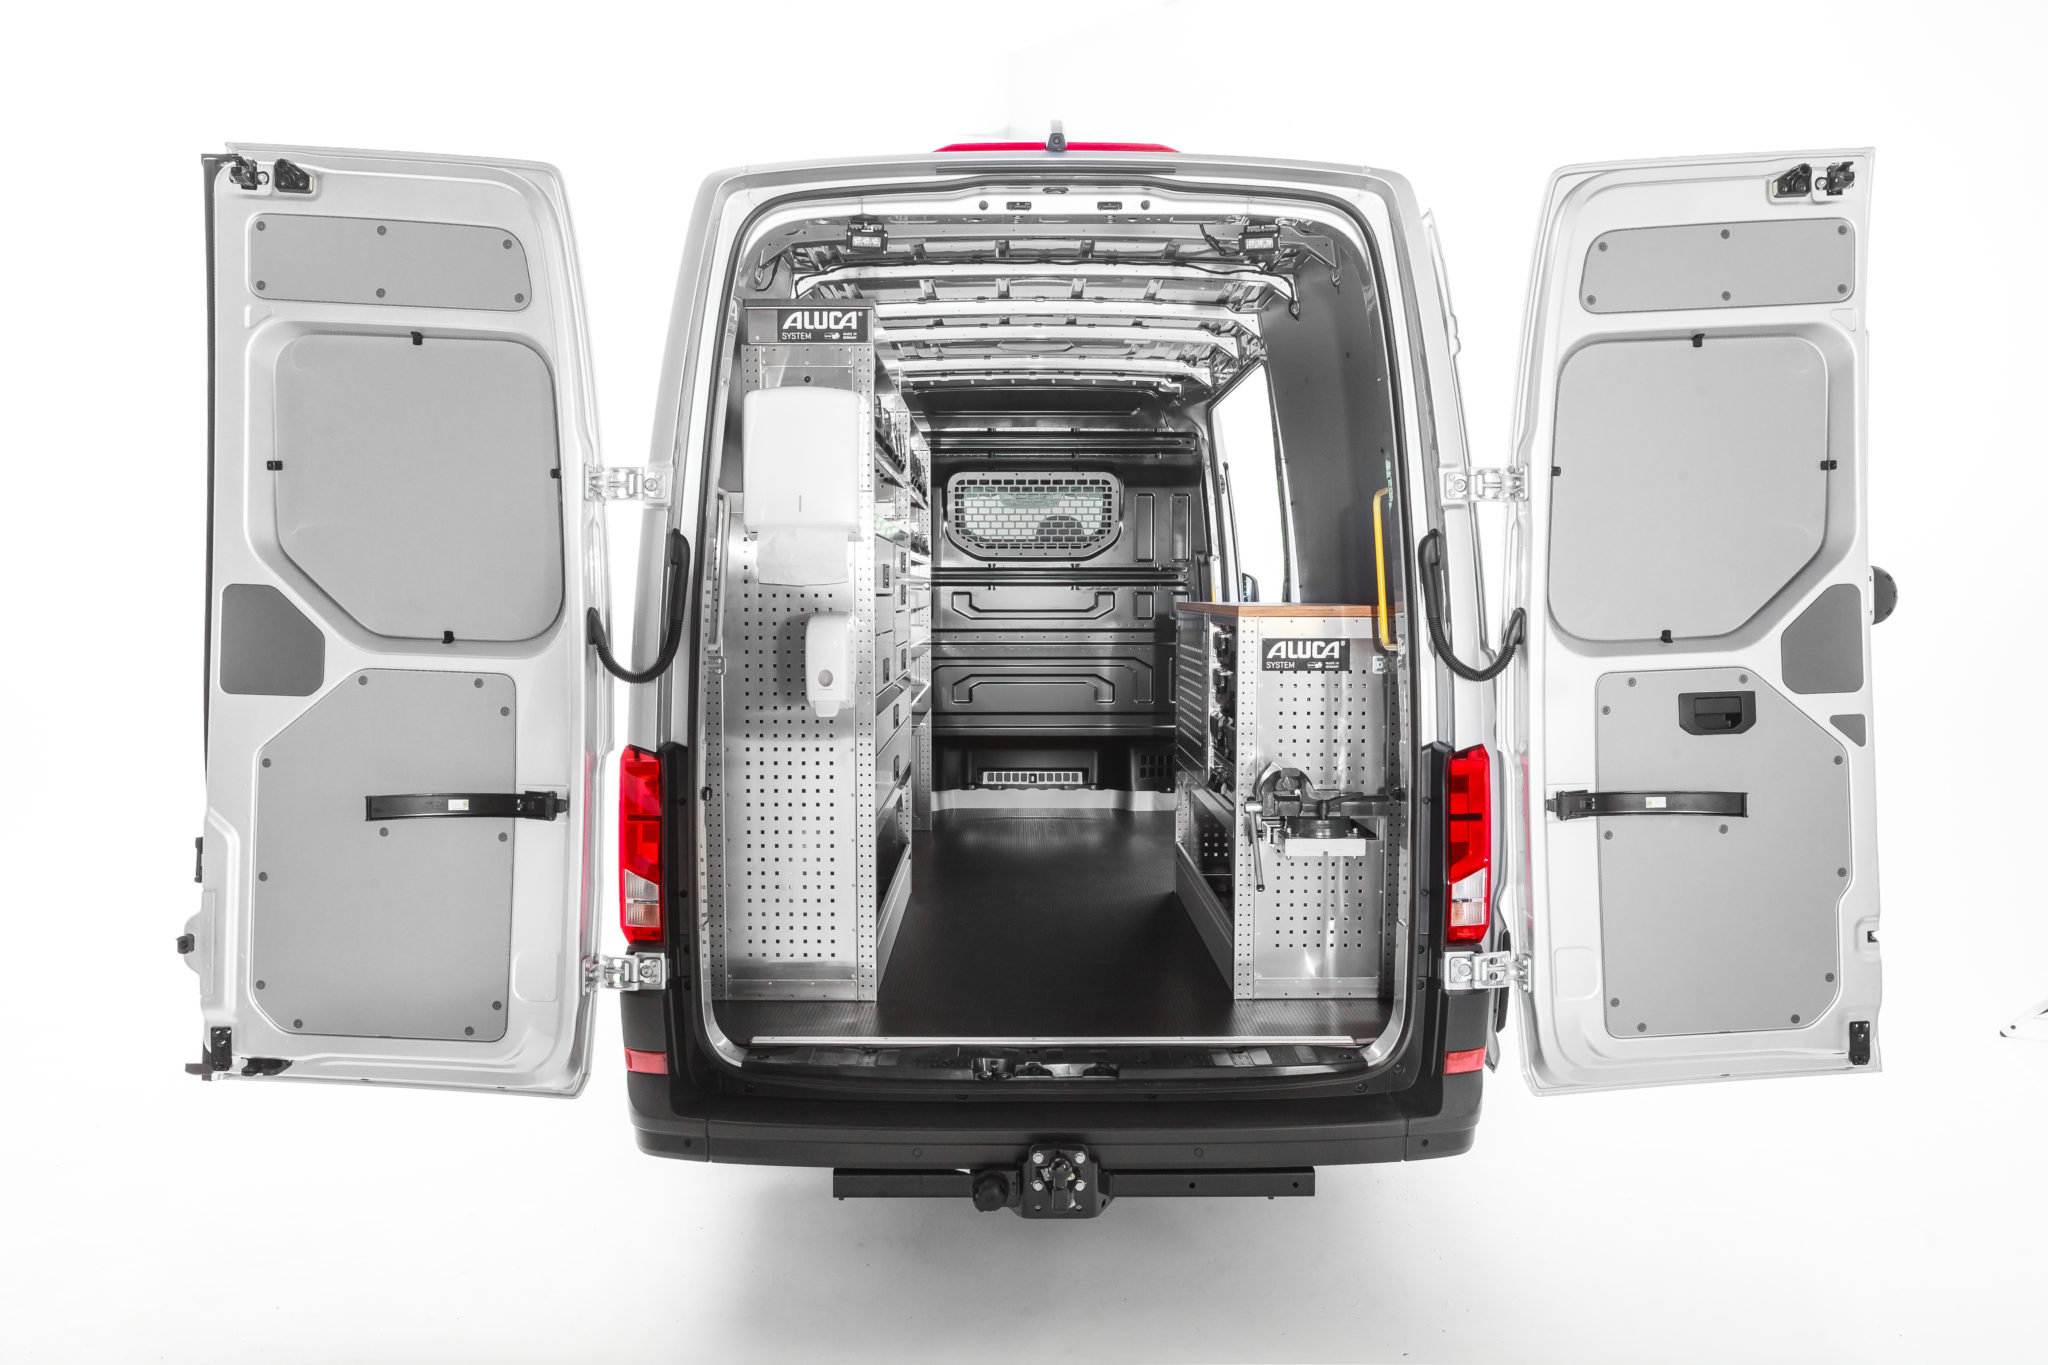 Aluca-inrichting-VW-Crafter-1